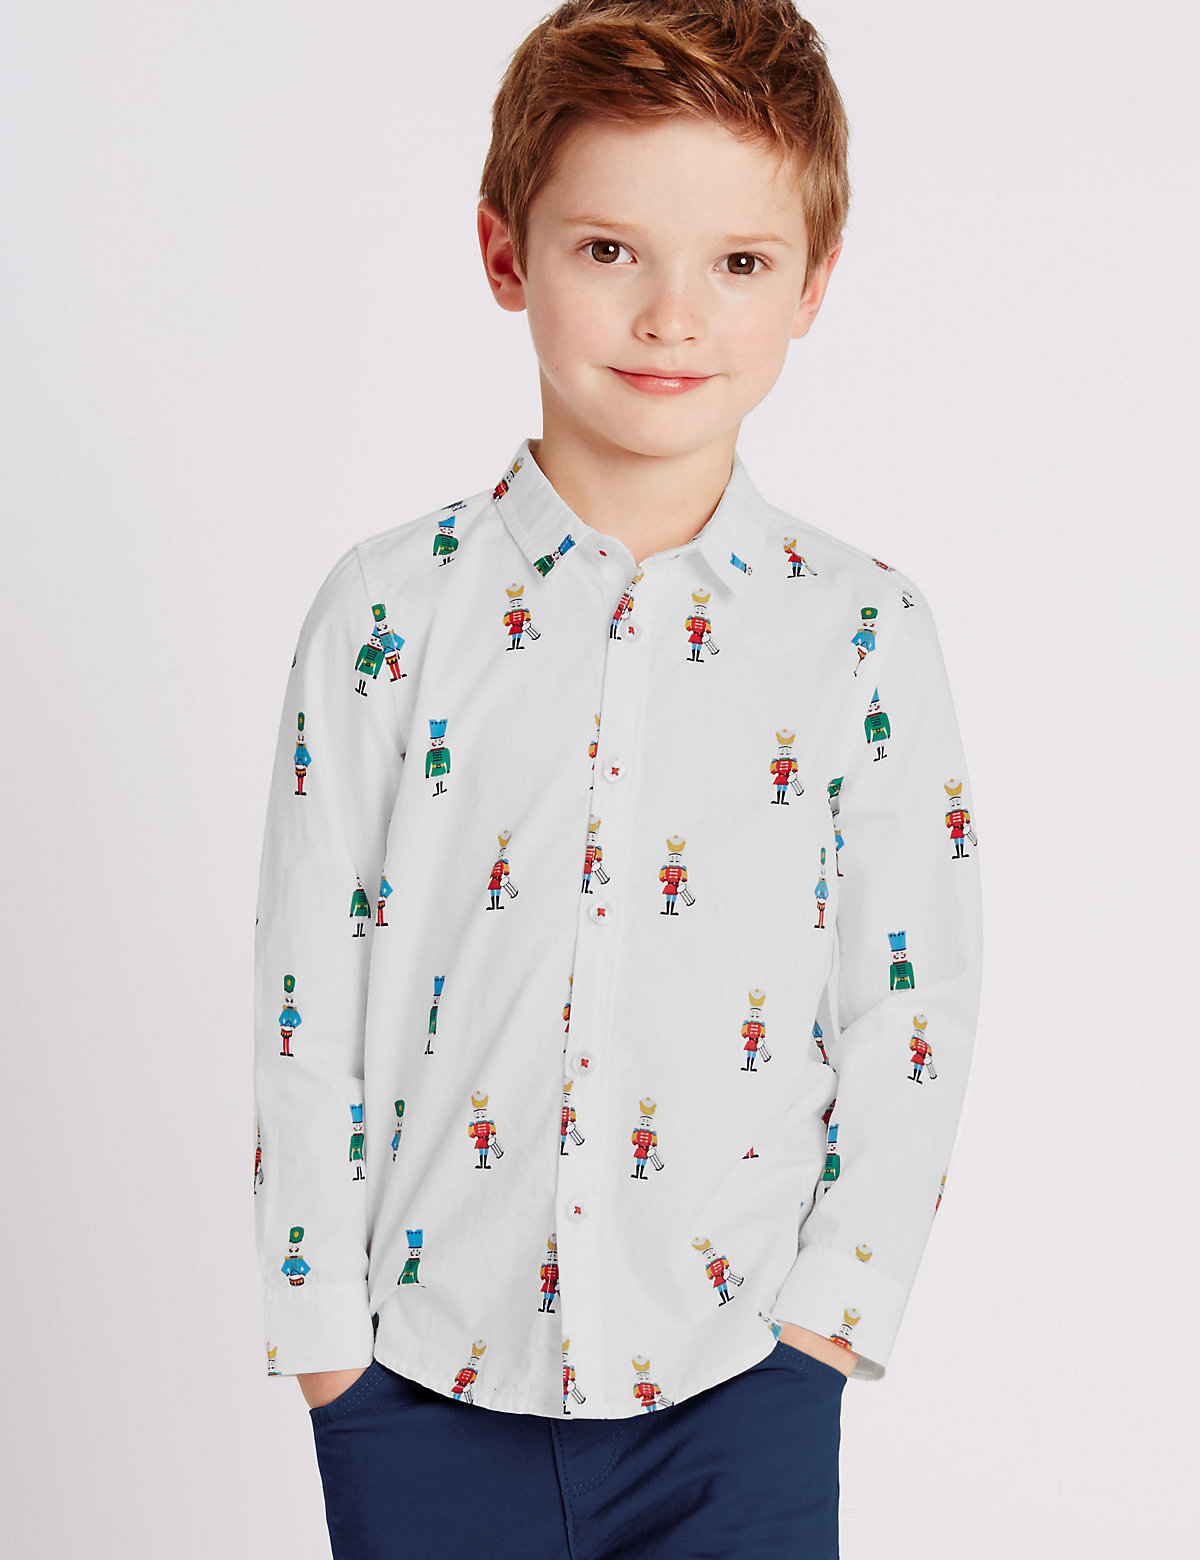 Image of All Over Soldier Print Shirt (1-7 Years)